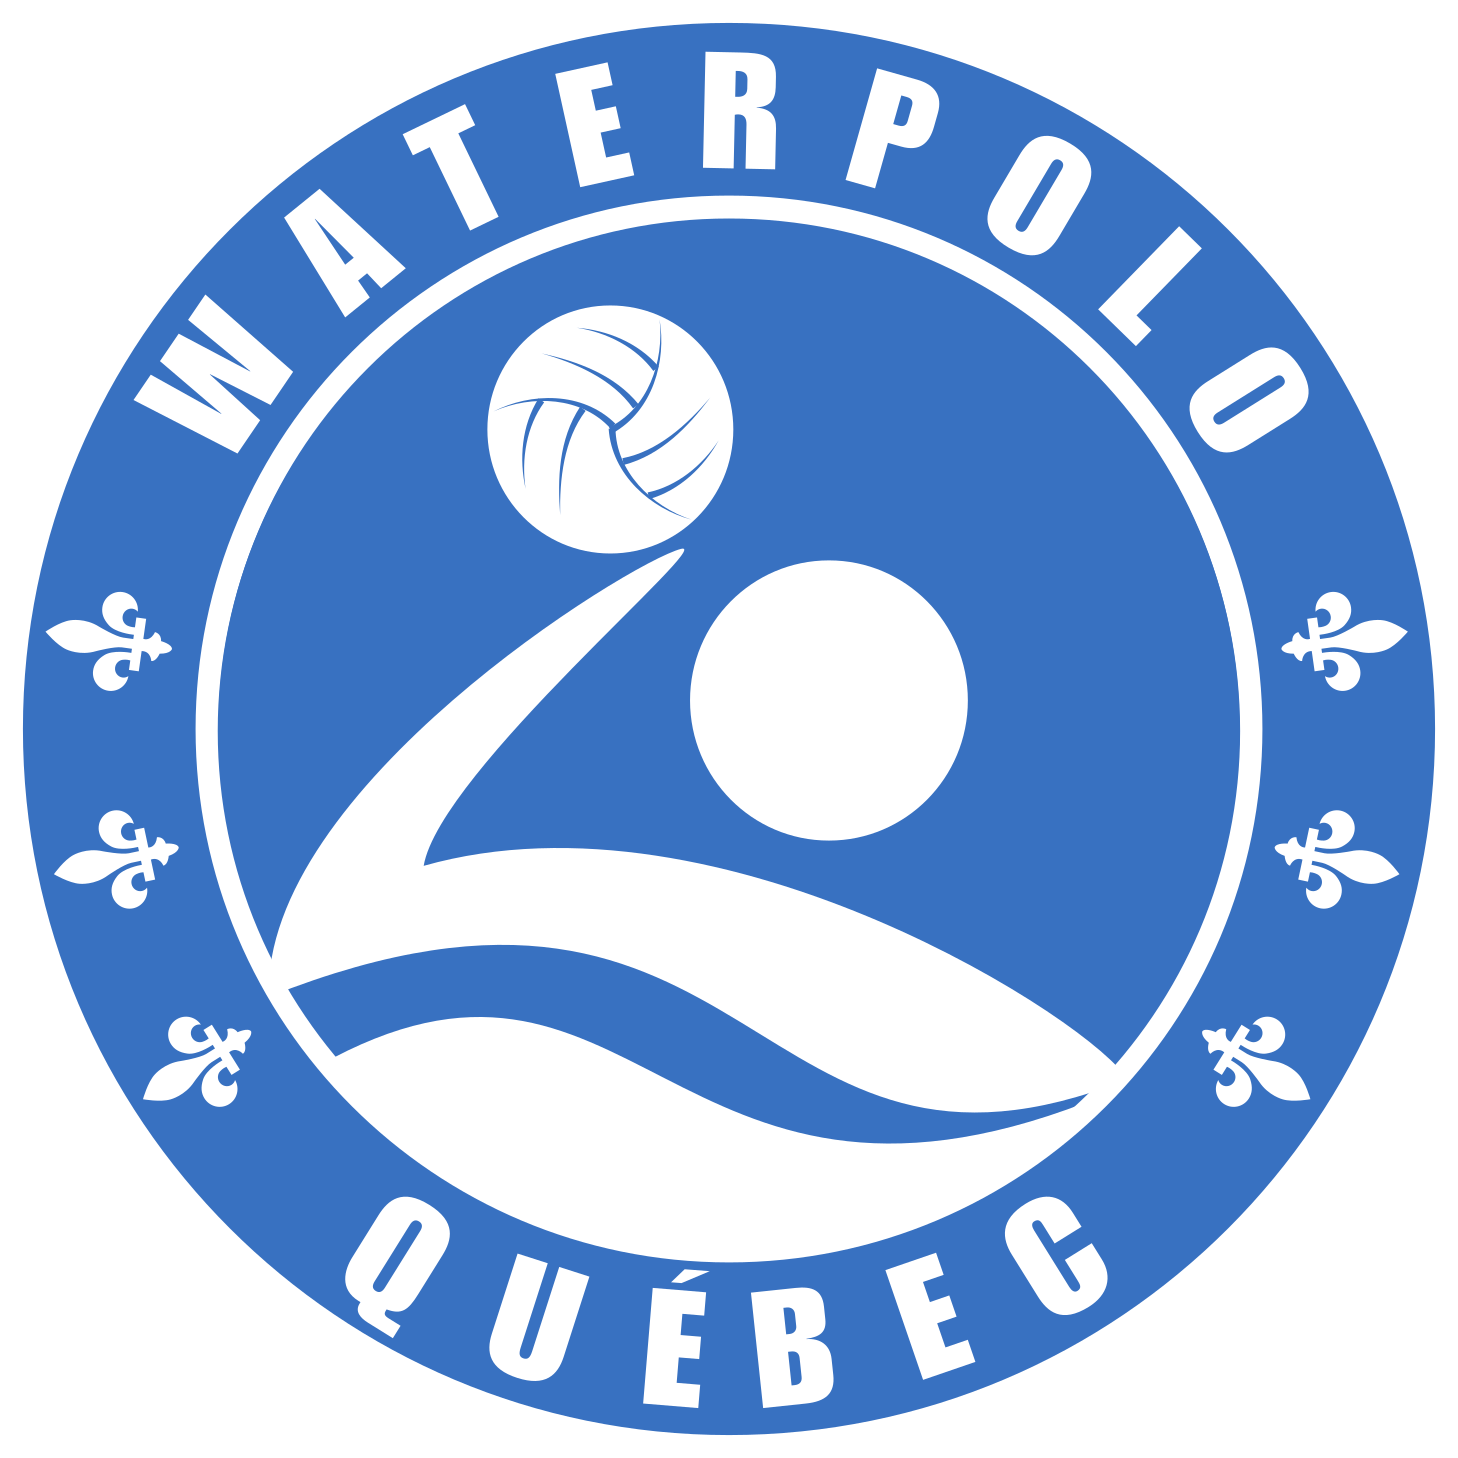 waterpolo quebec logo